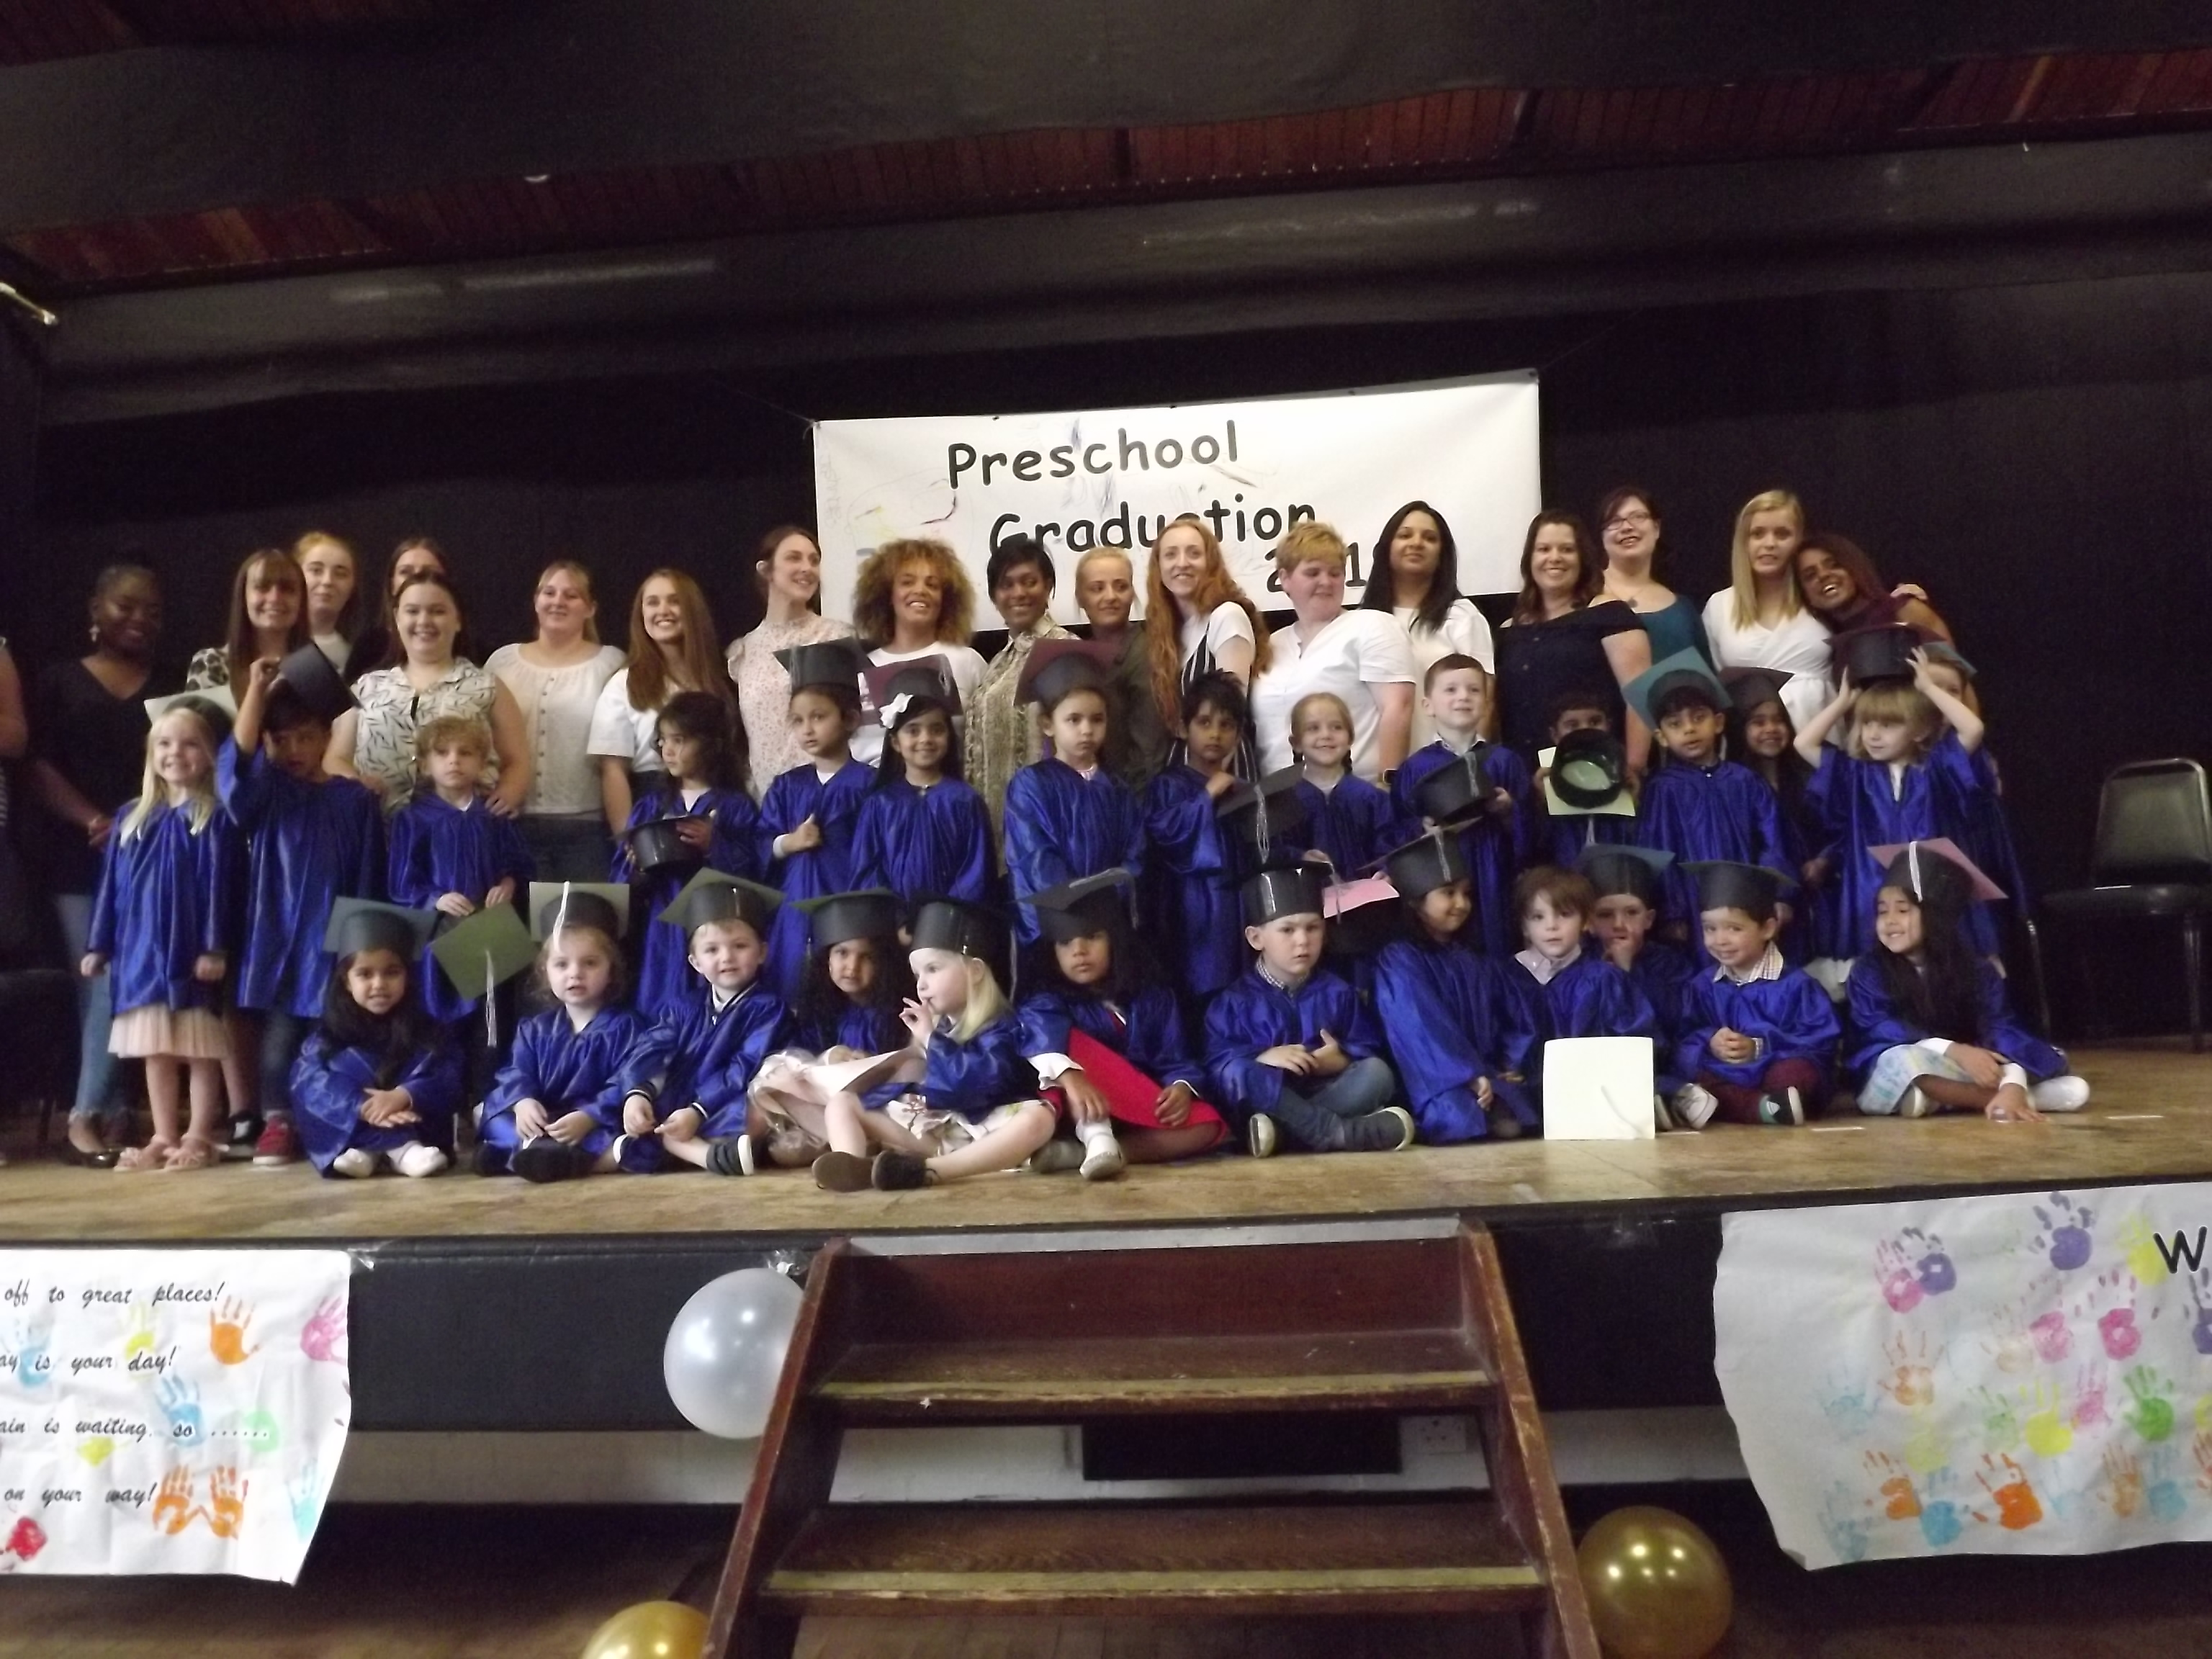 The Preschool leavers came together with their families and staff to celebrate their graduation from nursery